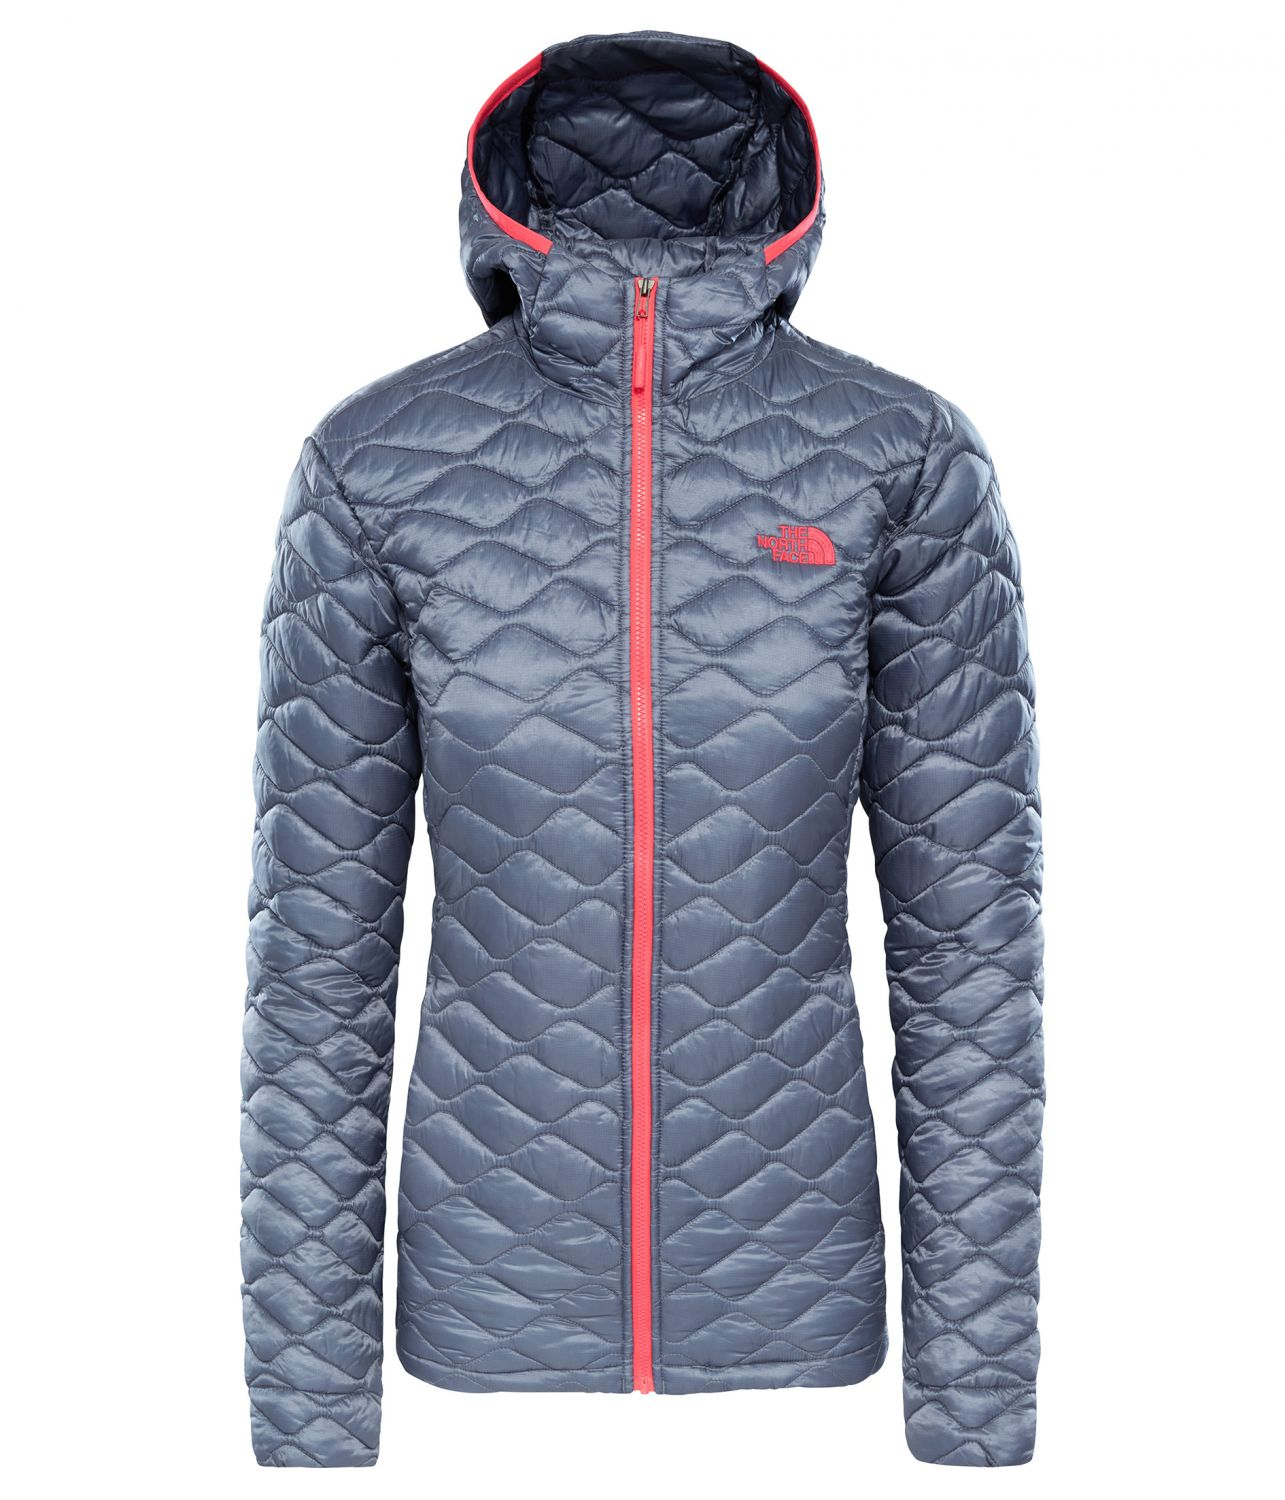 timeless design 7a0bf a0536 The North Face Damen Thermoball™ Hoodie im Biwak Onlineshop ...